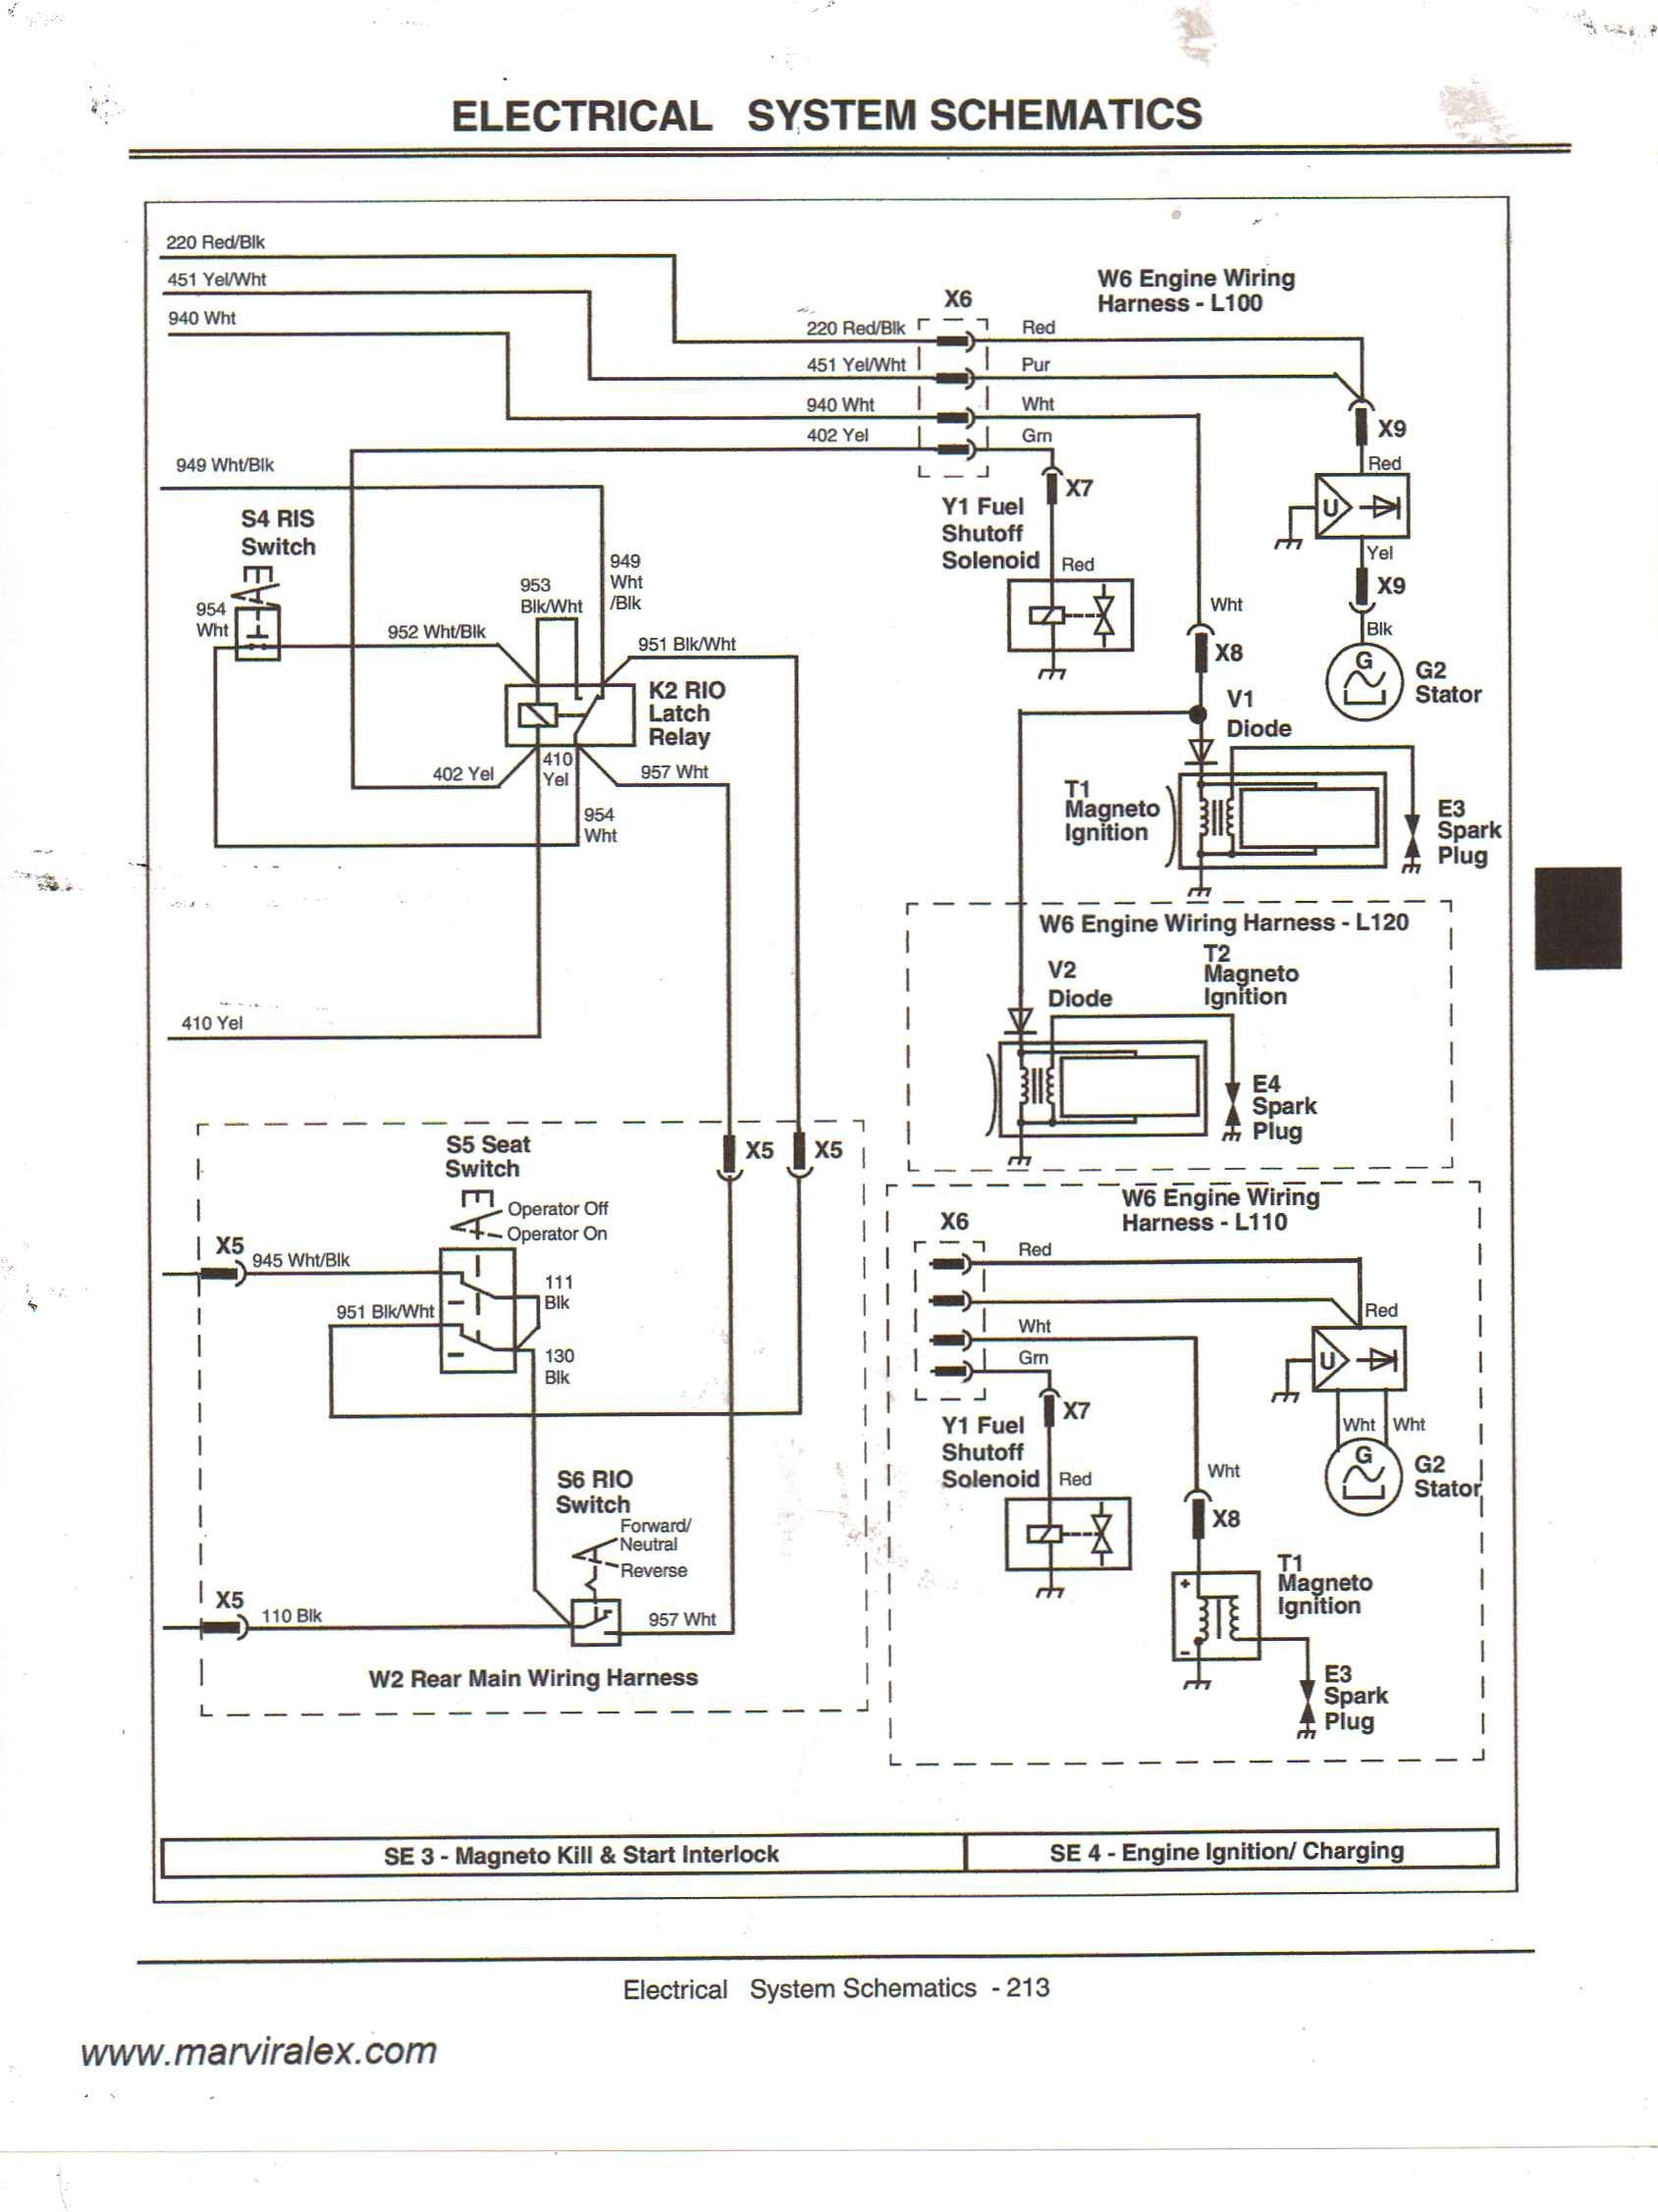 4020 john deere ignition wiring diagram lt155 john deere ignition wiring diagram john deere lt155 wiring schematic | free wiring diagram #4